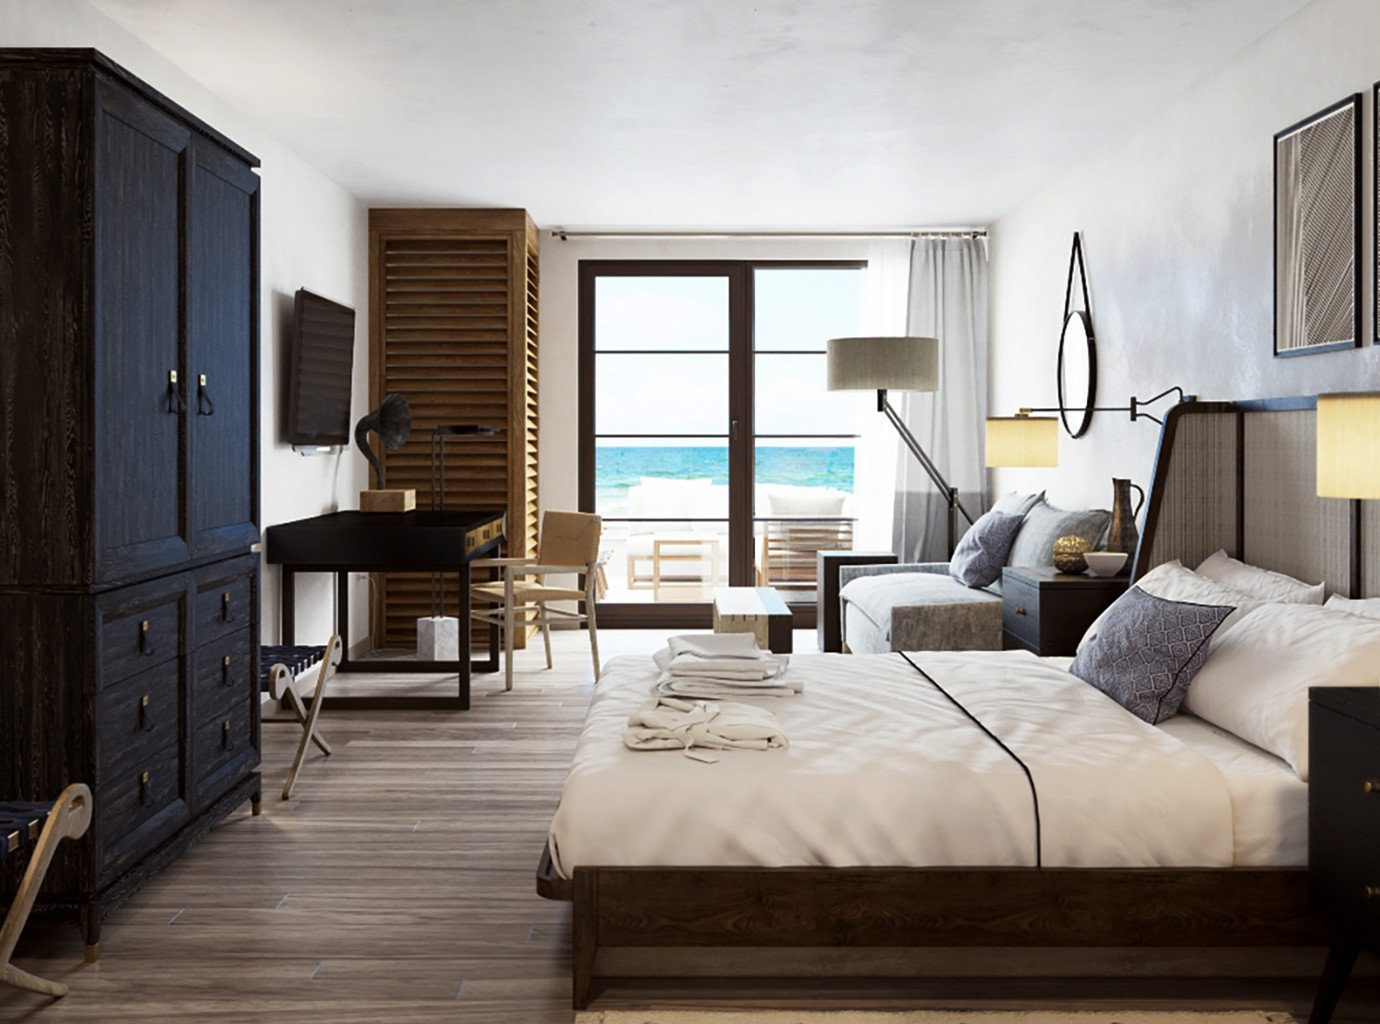 Bedroom Hotels Resort Trip Ideas indoor wall floor room property living room Living ceiling Suite estate condominium home interior design real estate cottage furniture Villa Design apartment decorated wood